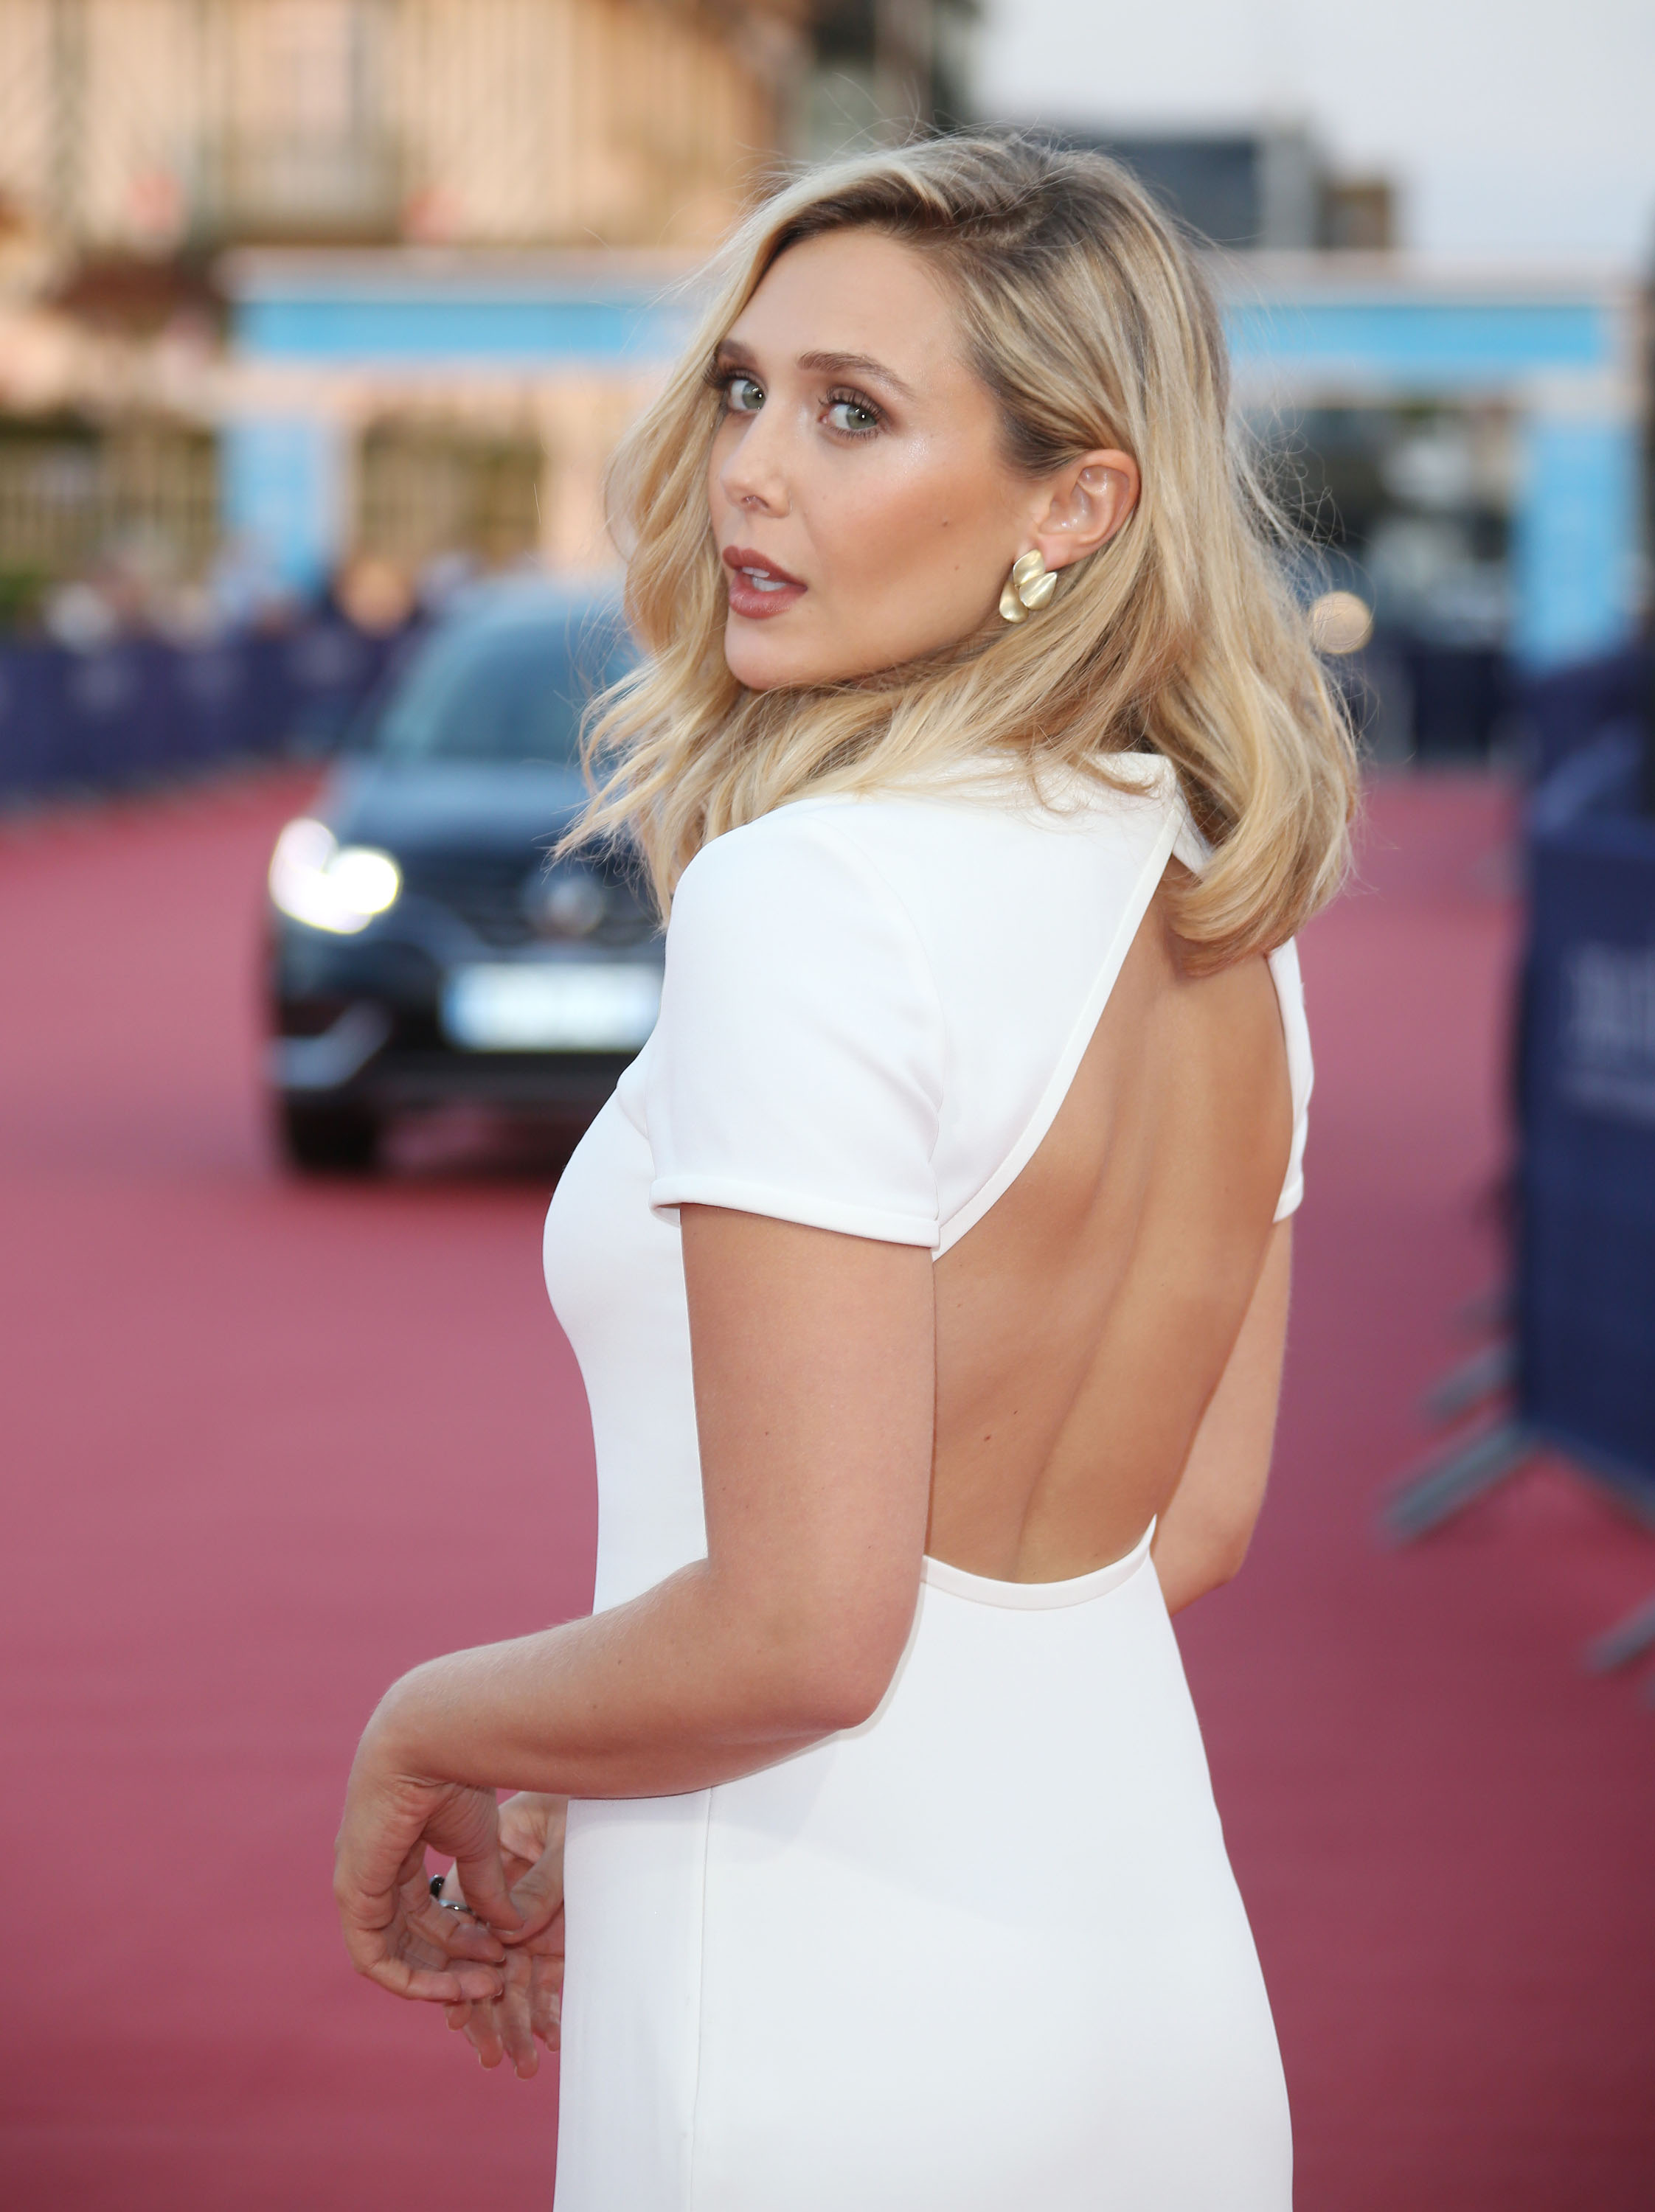 Steamiest Images Of Elizabeth Olsen Which Will Prove That She's The Perfect Fit For Scarlet Witch